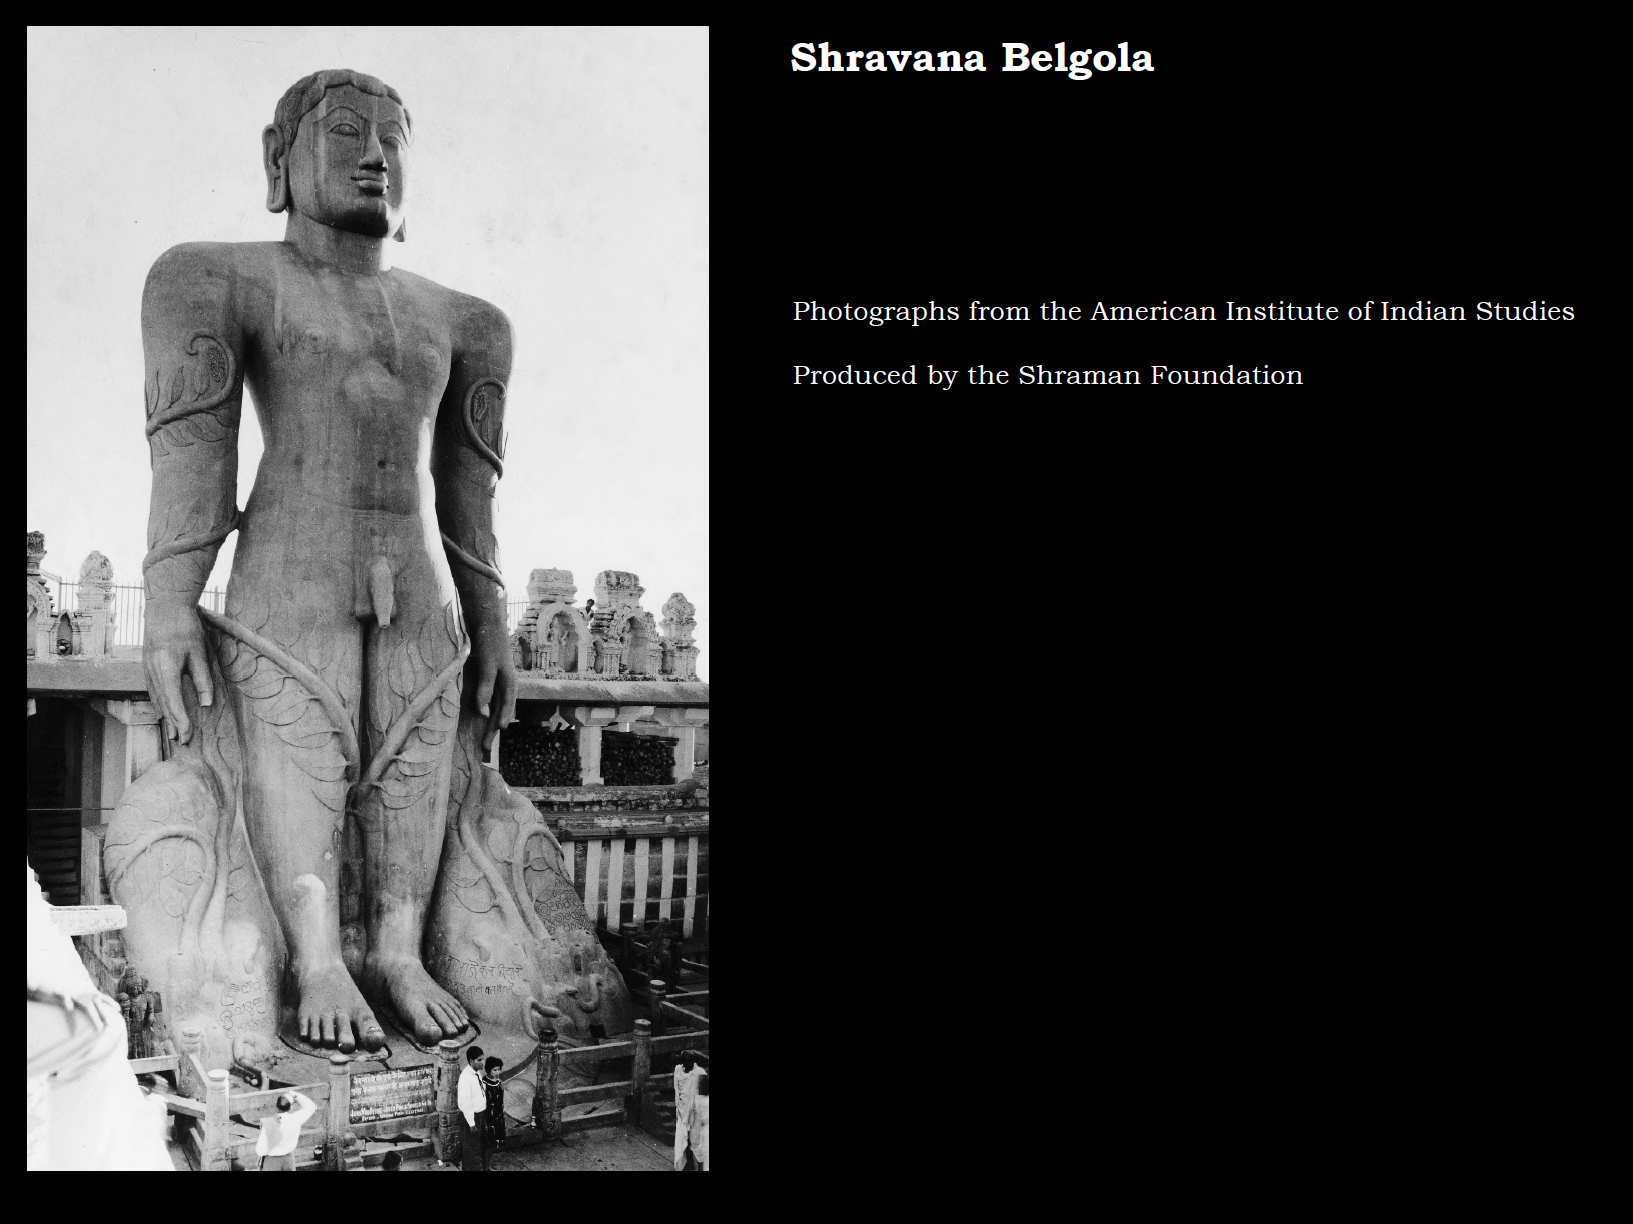 Shravana Belgola is the premier Jain pilgrimage destination in southern India. Located in the state of Karnataka, it is most famous for the colossal sculpture of the enlightened being Bahubali. This photo book explores this statue and highlights some of the other images and temples at this famous pilgrimage site.